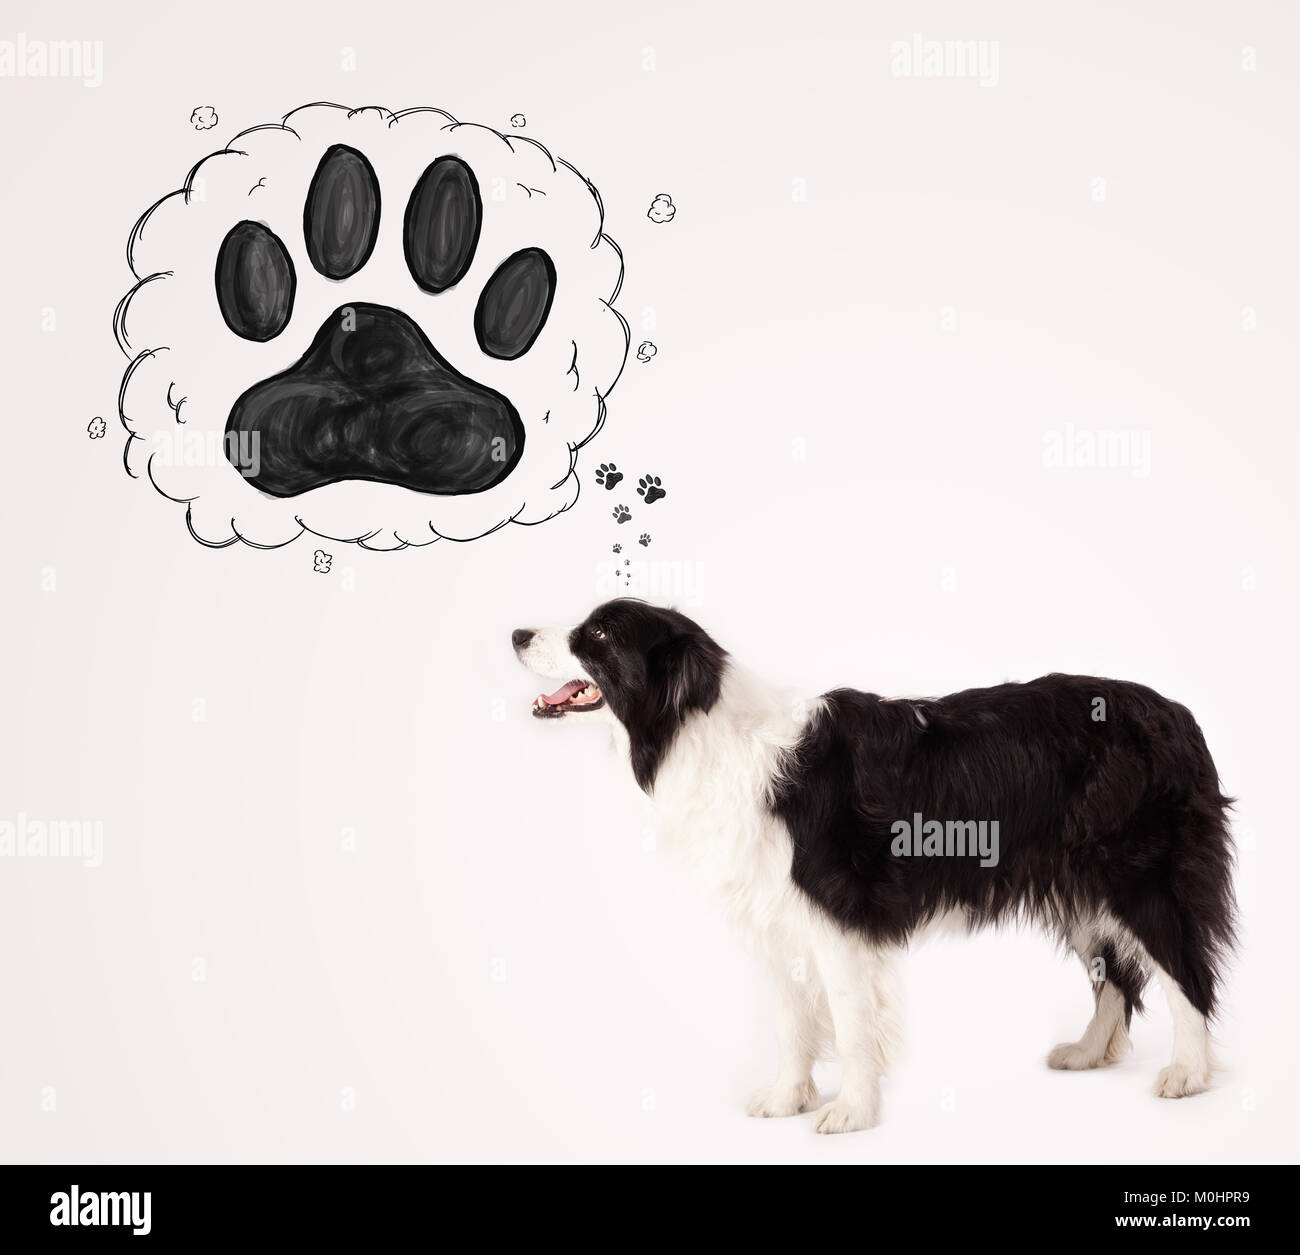 Cute black and white border collie thinking about a paw in a thought